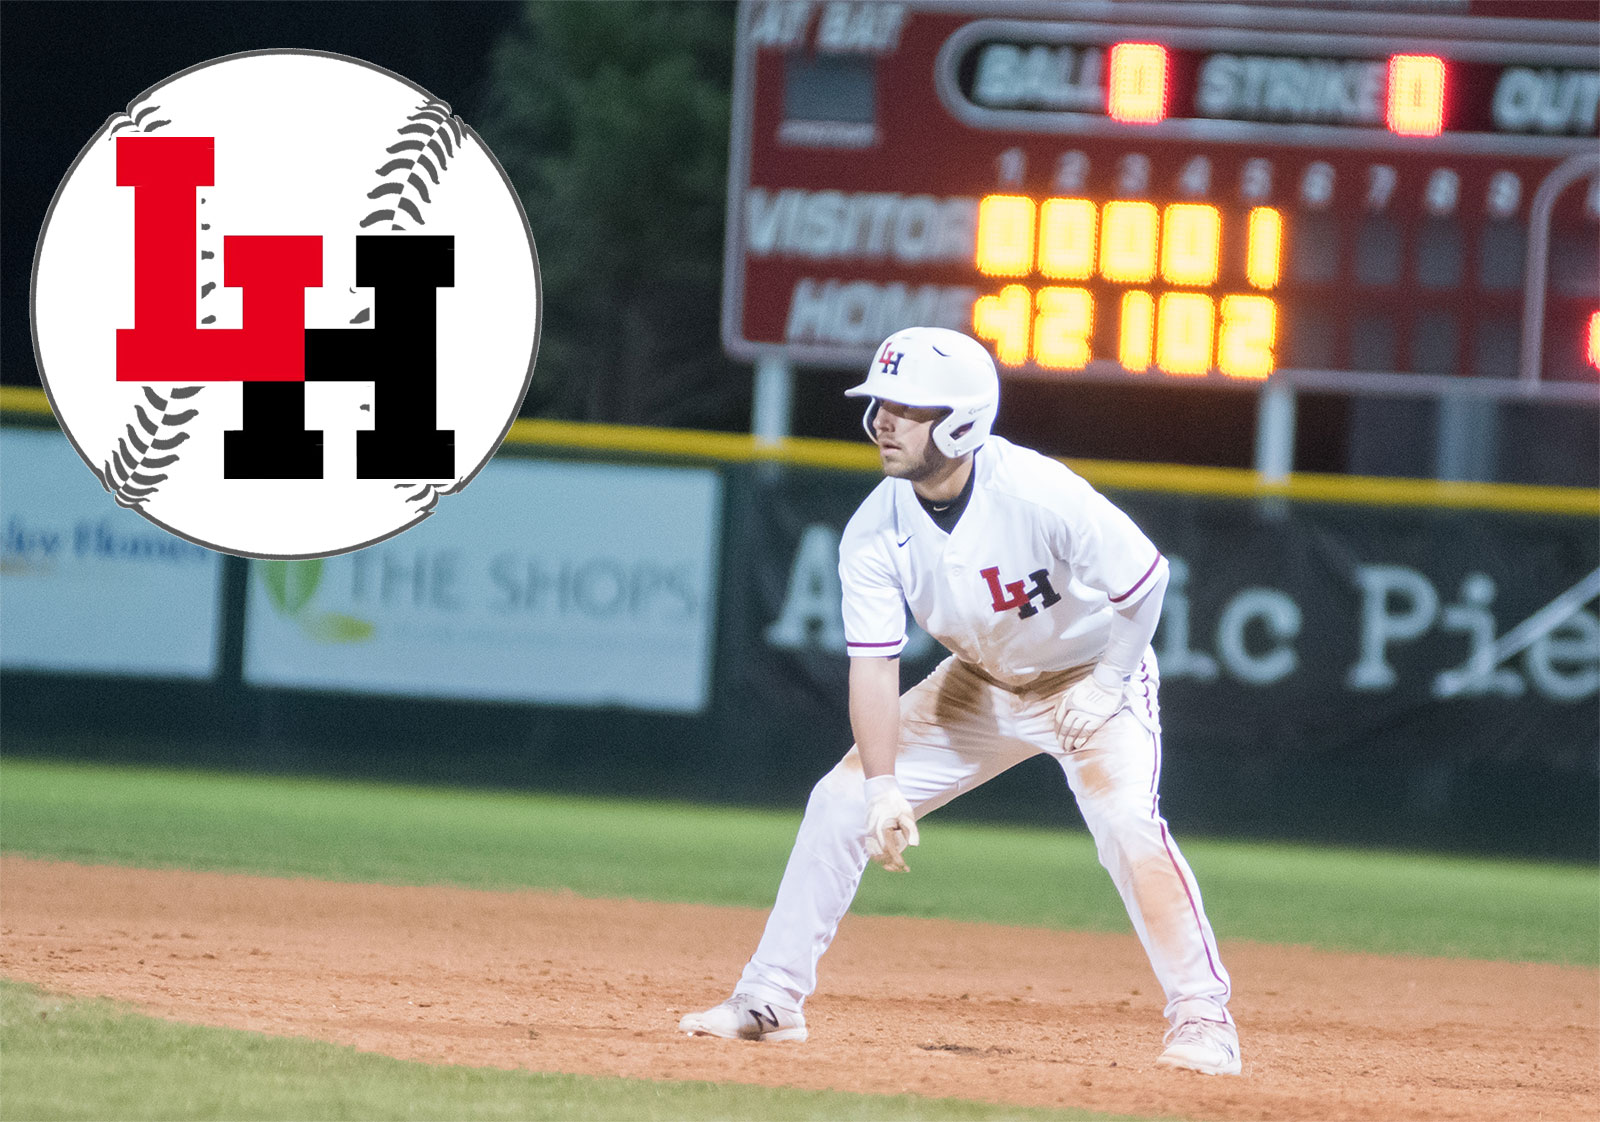 Header image for 2021 LAKE HIGHLANDS BASEBALL FUNDRAISER